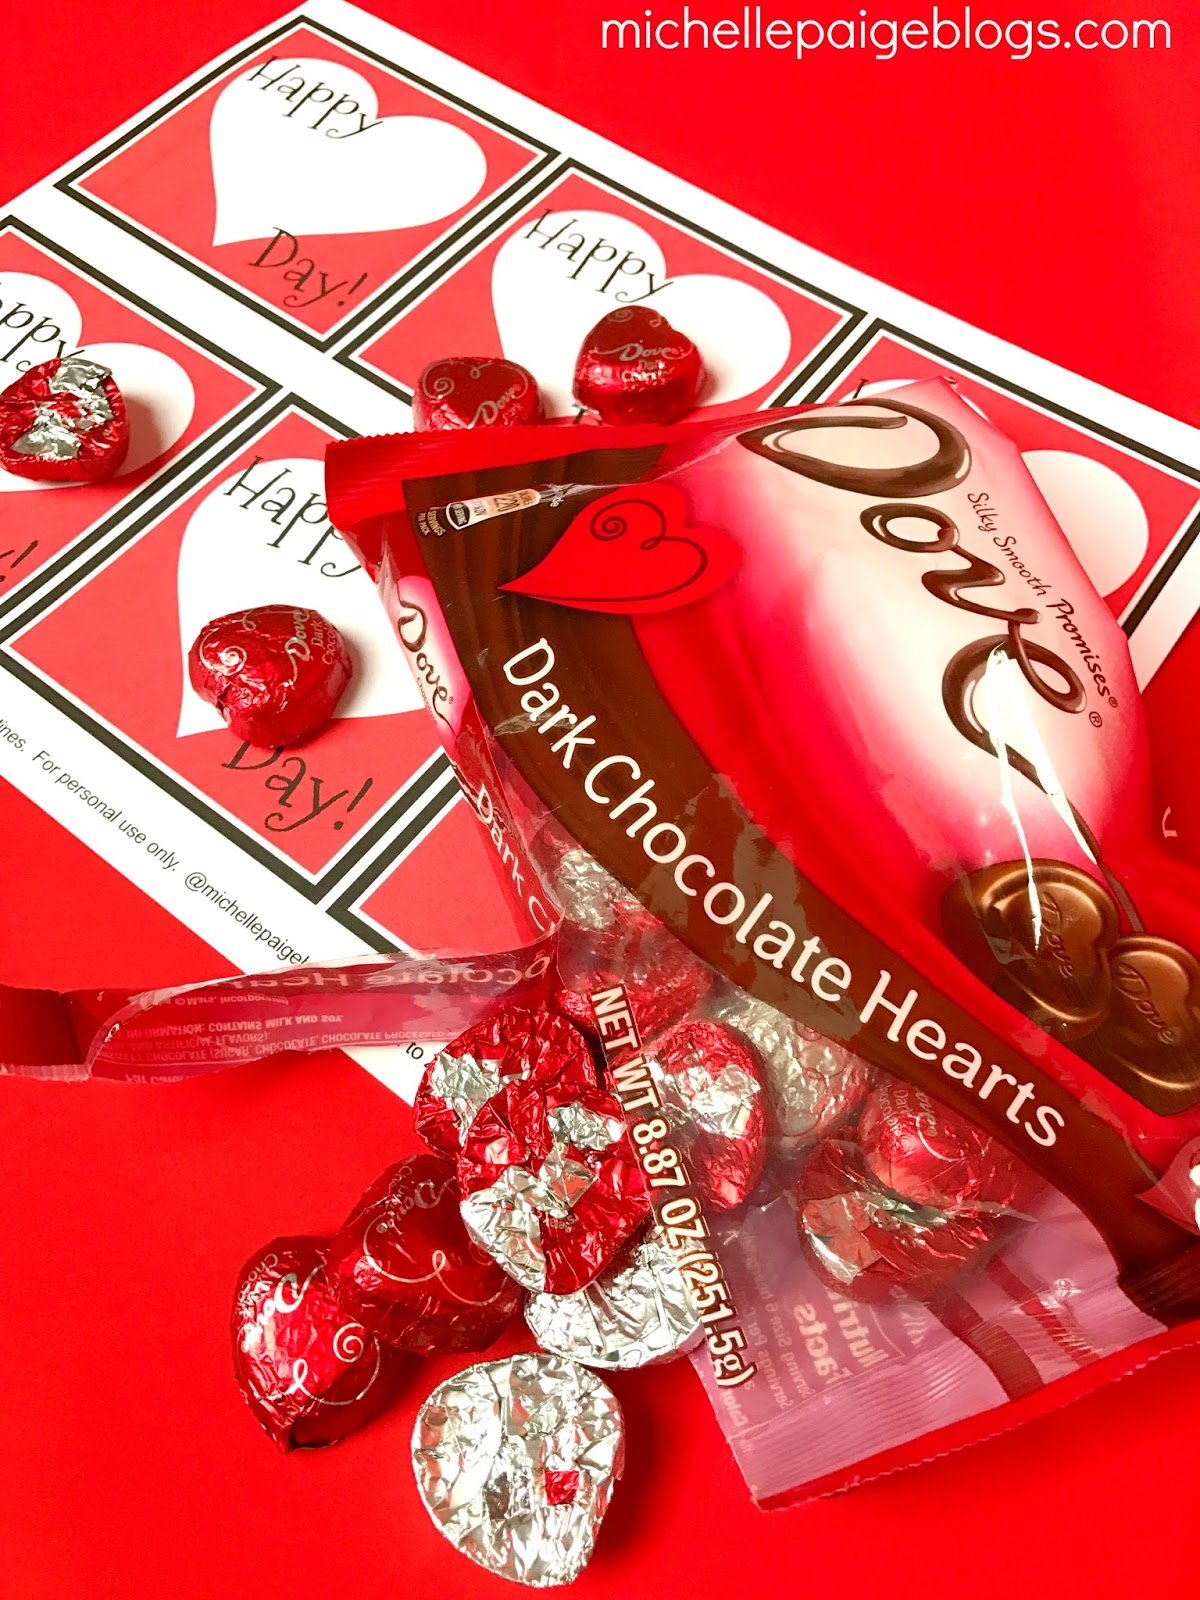 Michelle Paige Blogs Chocolate Candy Heart Valentines